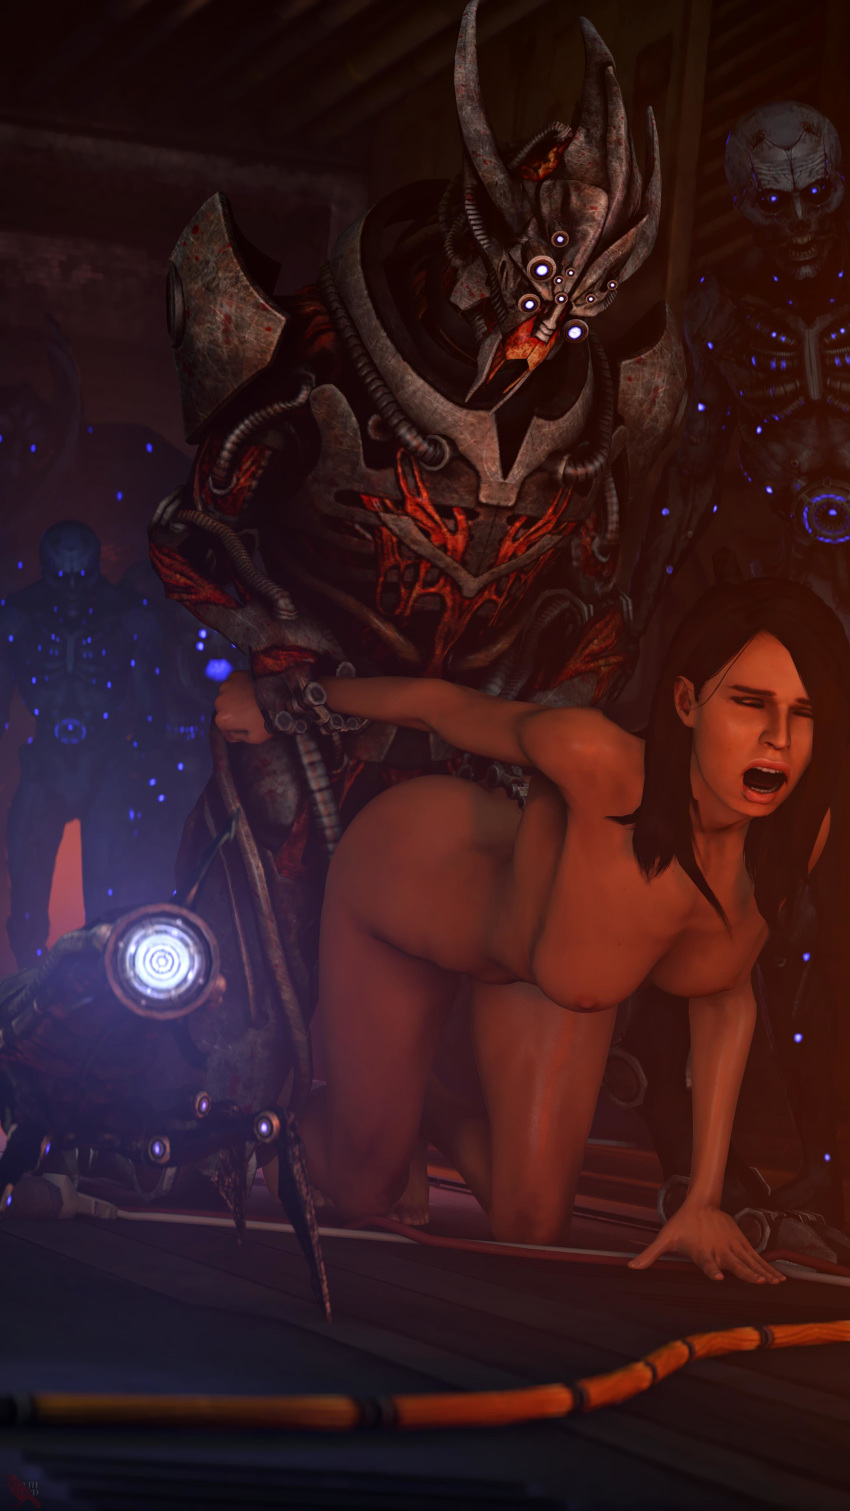 effect gif porn mass andromeda Rouge the bat hentai gif